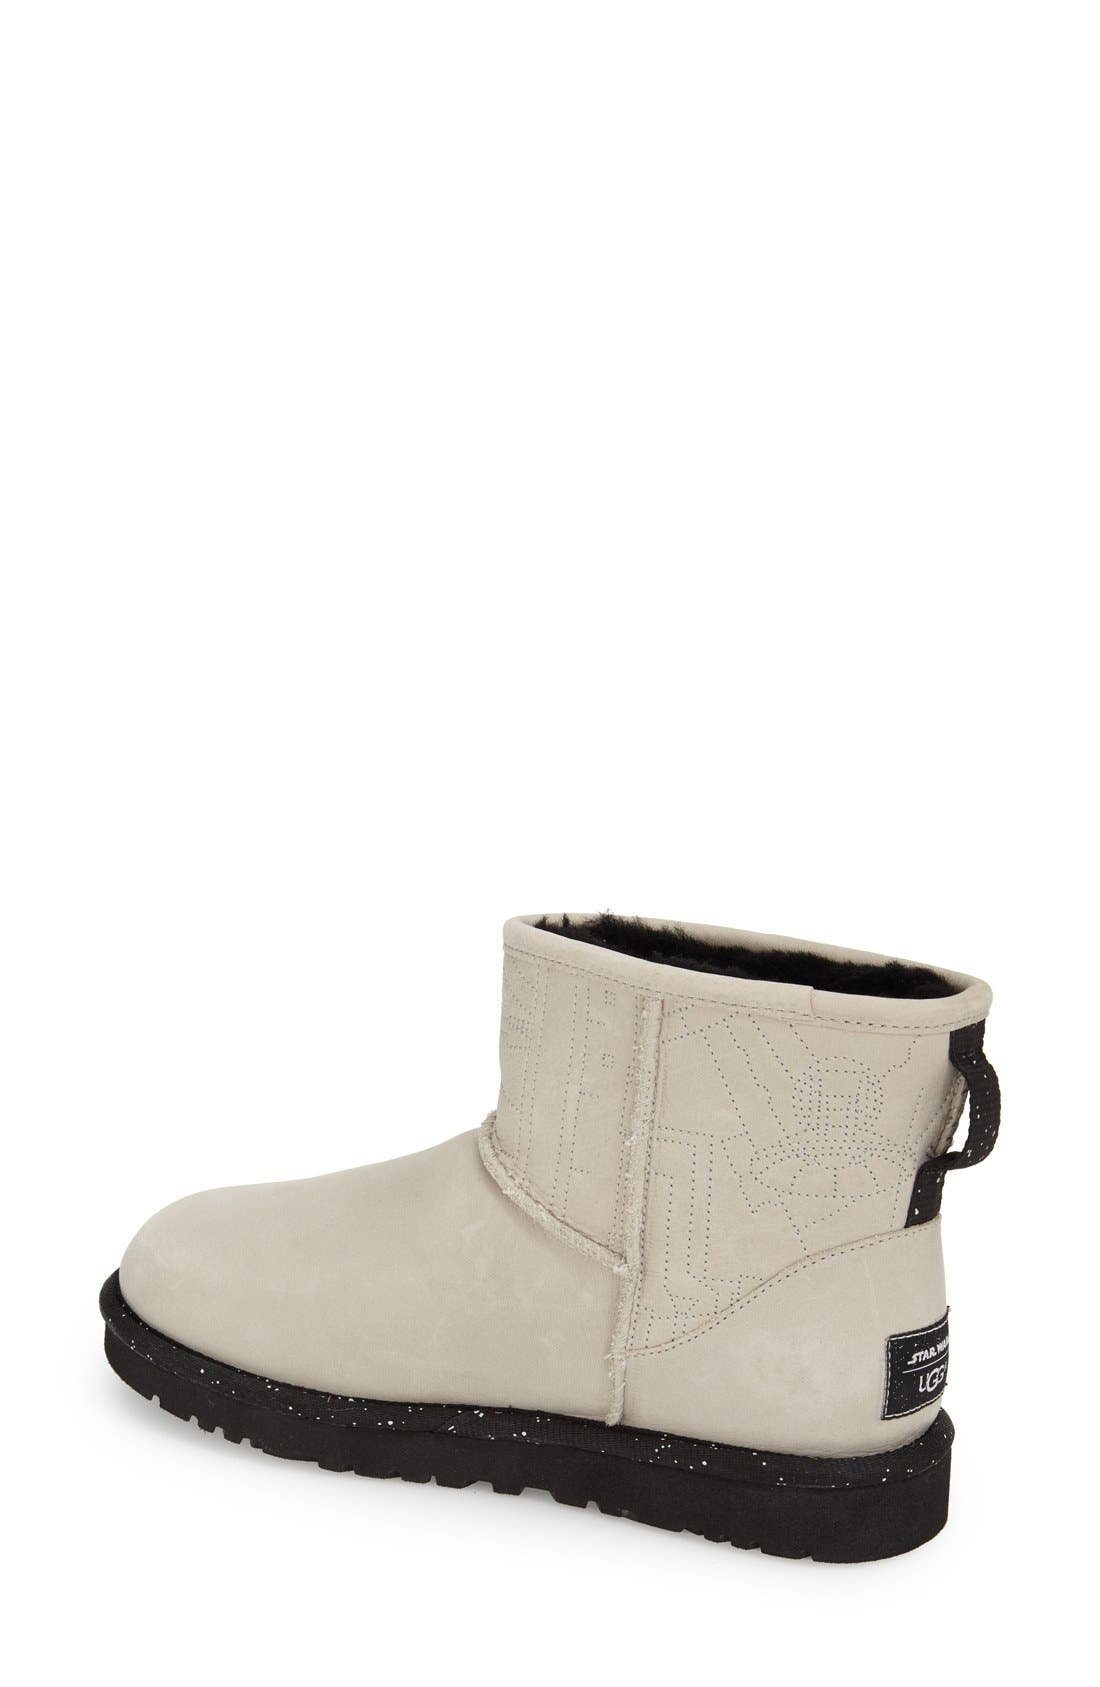 Alternate Image 2  - UGG® 'Star Wars Millennium Falcon - Classic Mini' Water Resistant Short Boot (Women)